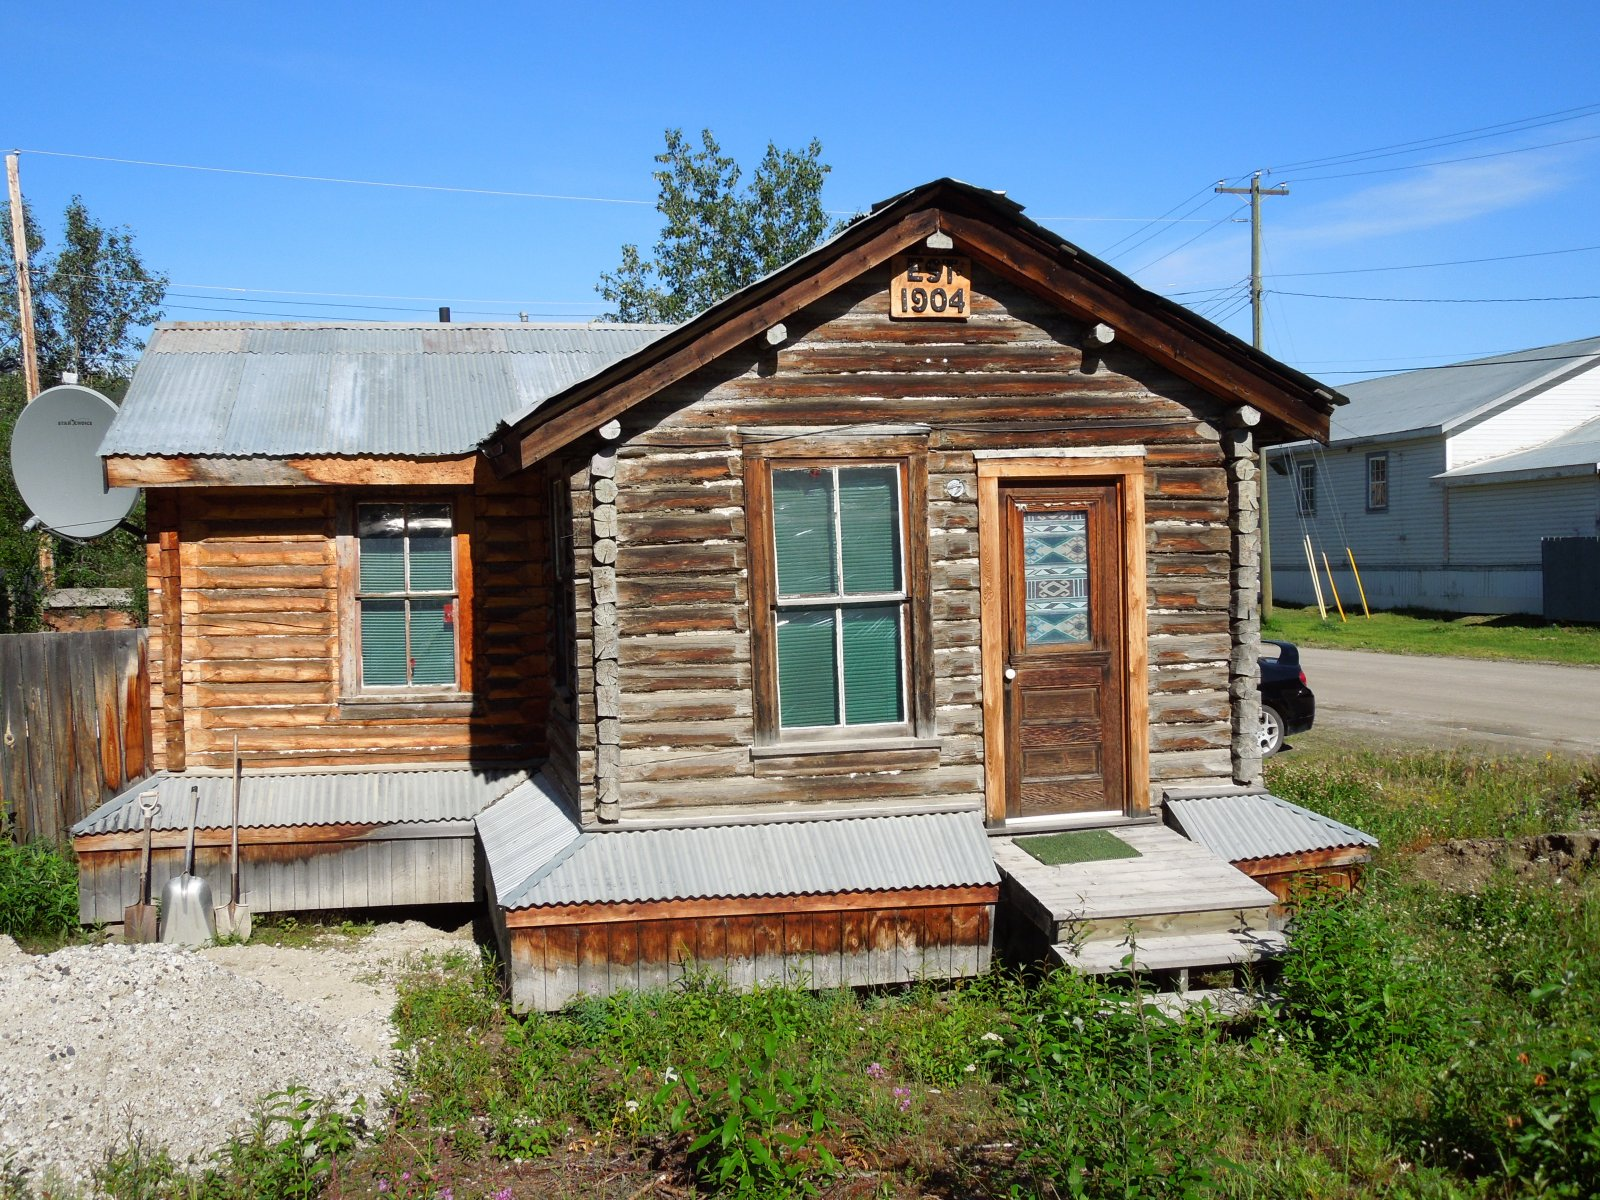 Click image for larger version  Name:Dawson City to Carmacks 003.jpg Views:55 Size:523.5 KB ID:221755